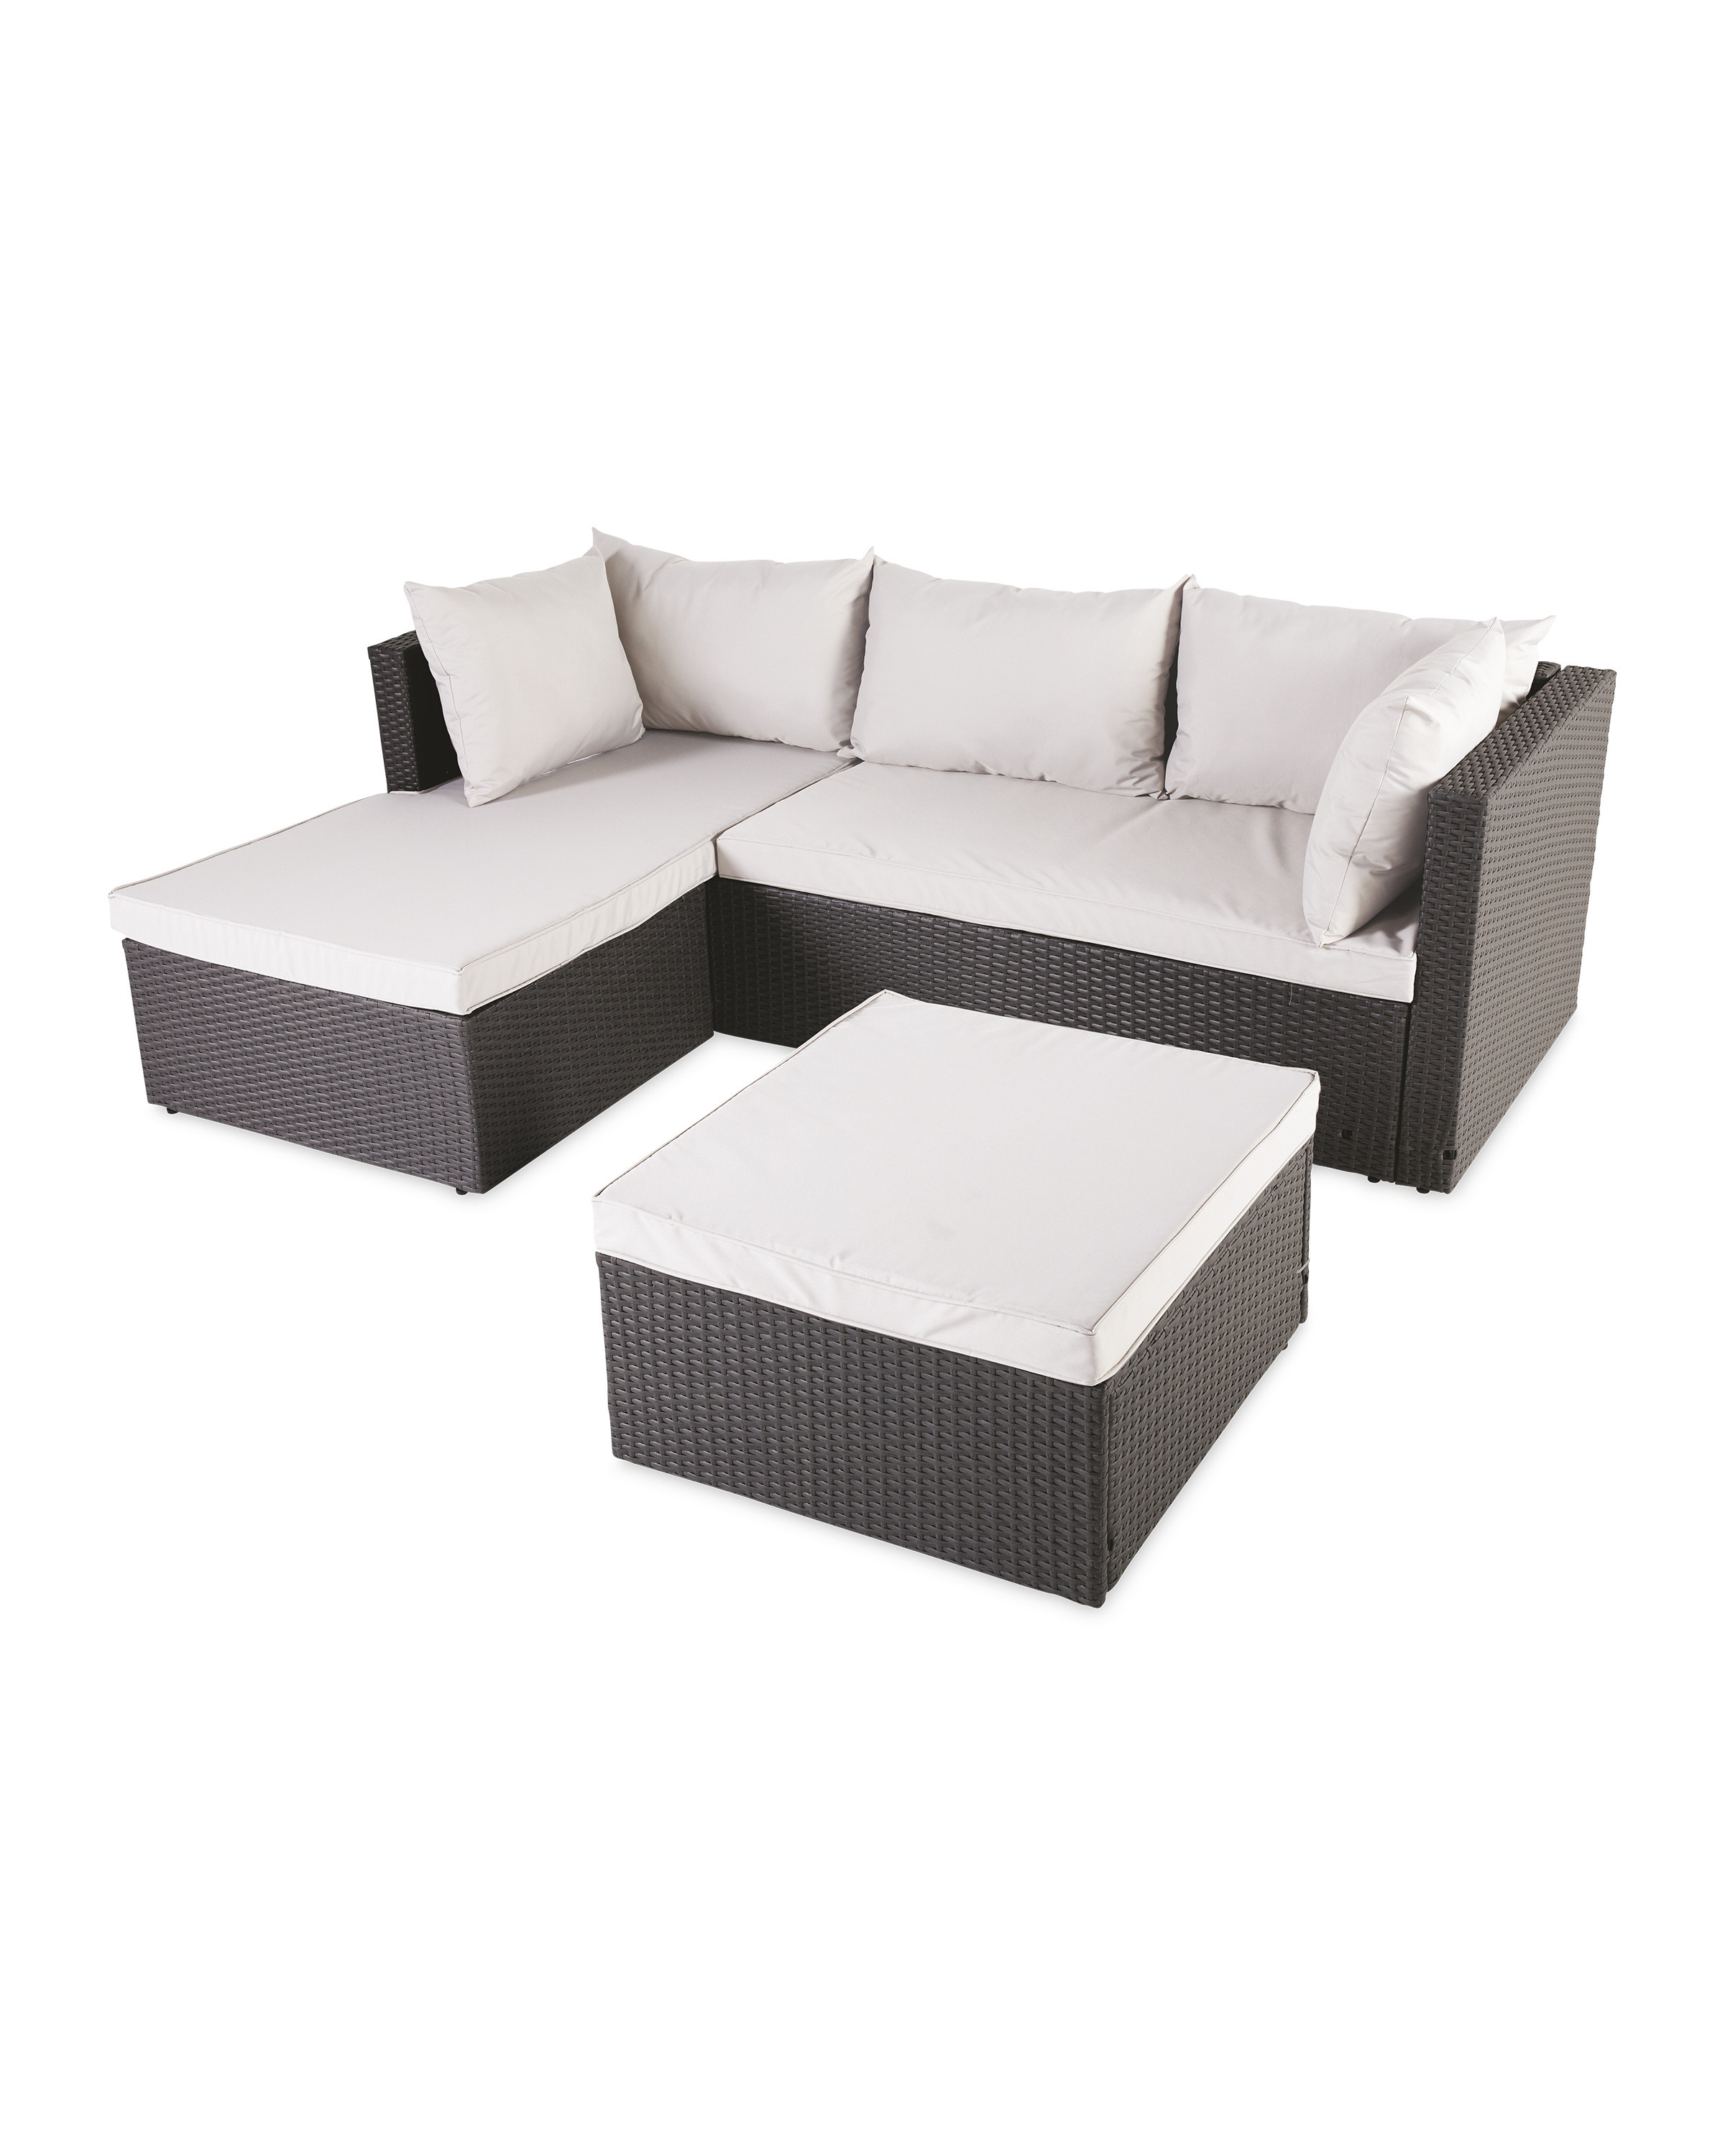 Better Homes And Gardens Replacement Cushions Azalea Ridge, Rattan Effect Anthracite Corner Sofa 2020 Aldi Uk